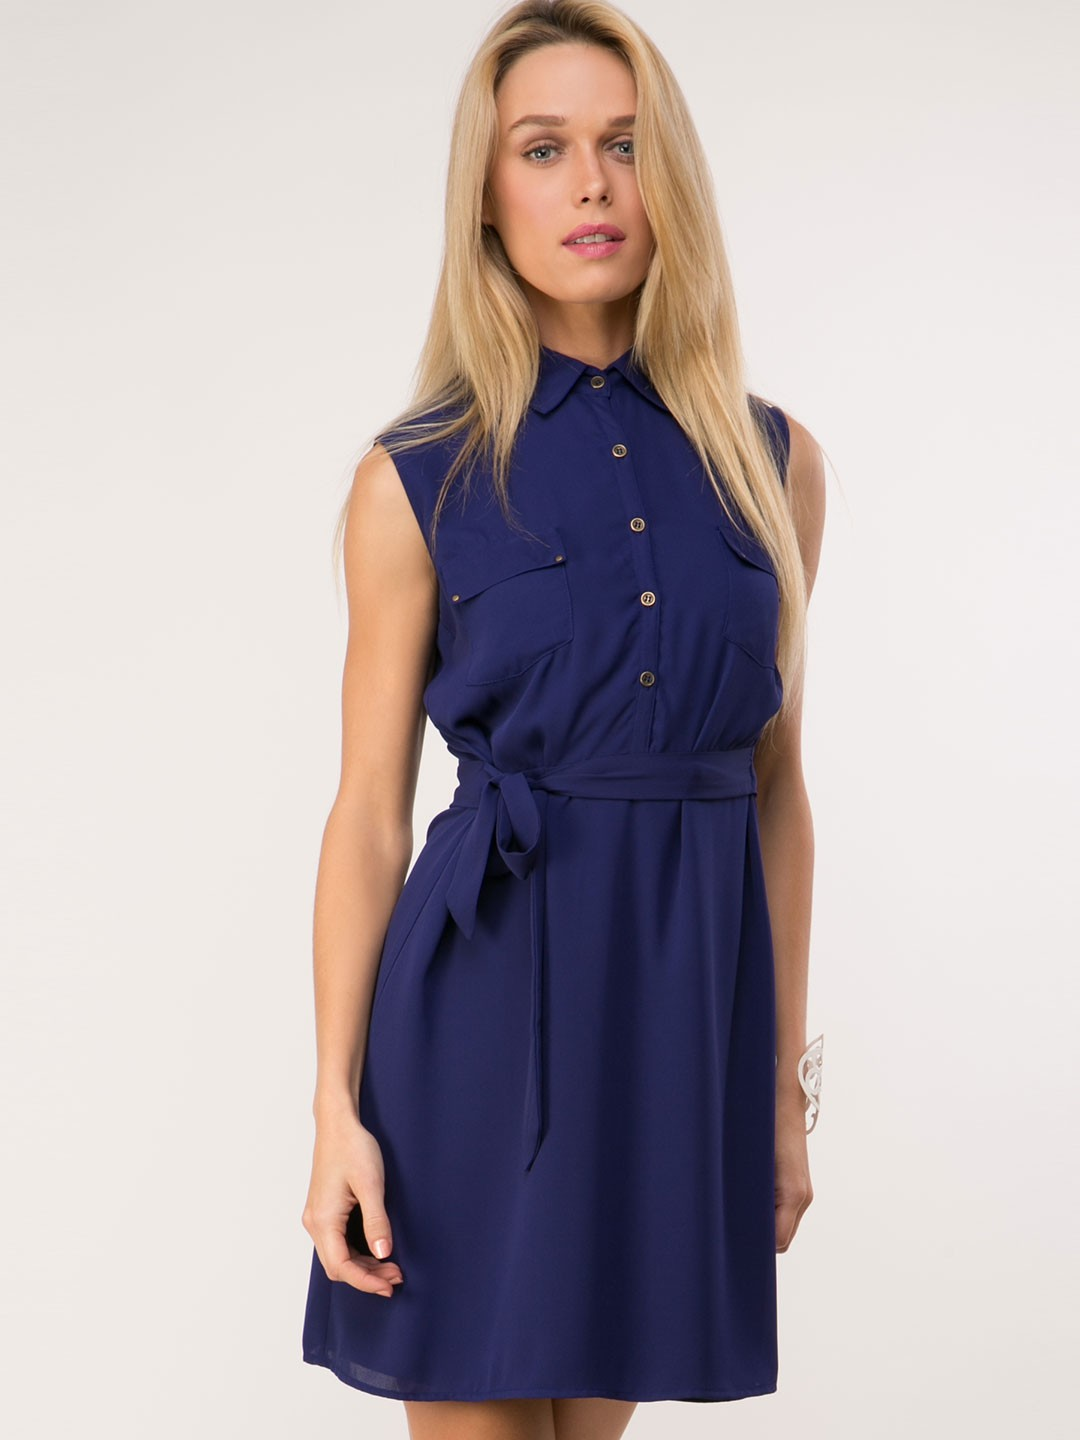 buy femella shirt dress with tie belt for s